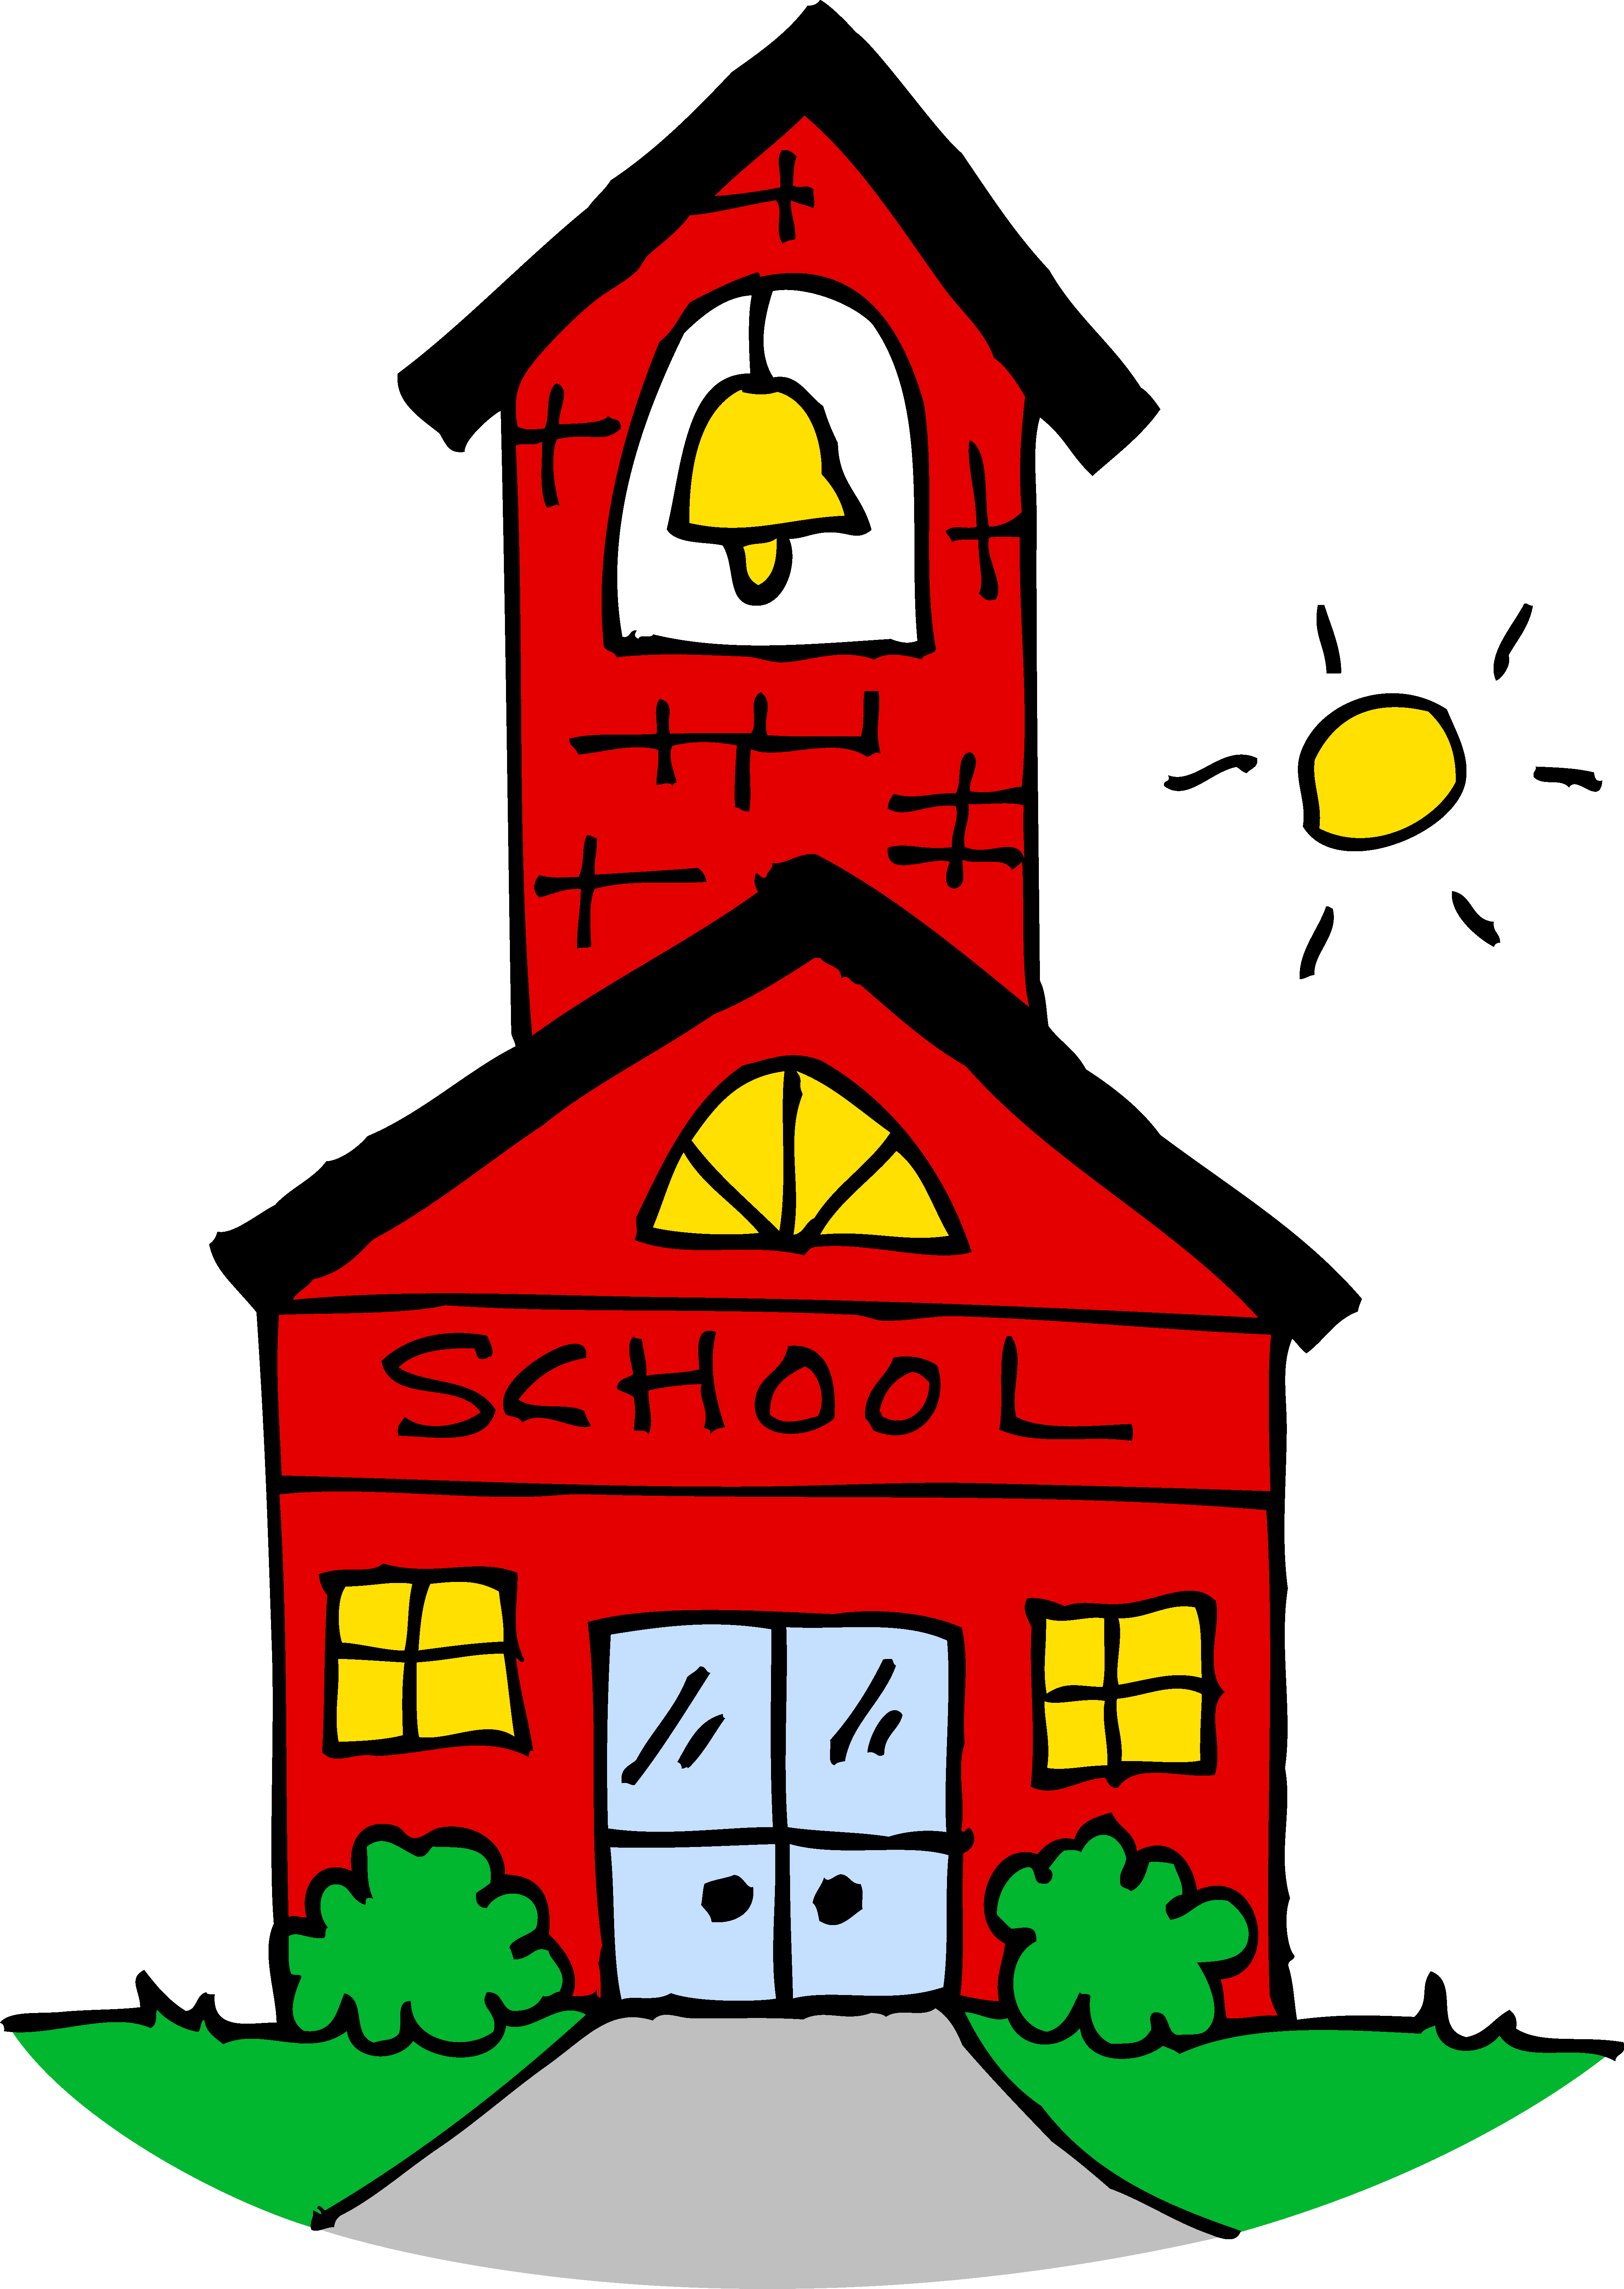 image library Last of clipart school clipart. House drawing at getdrawings.